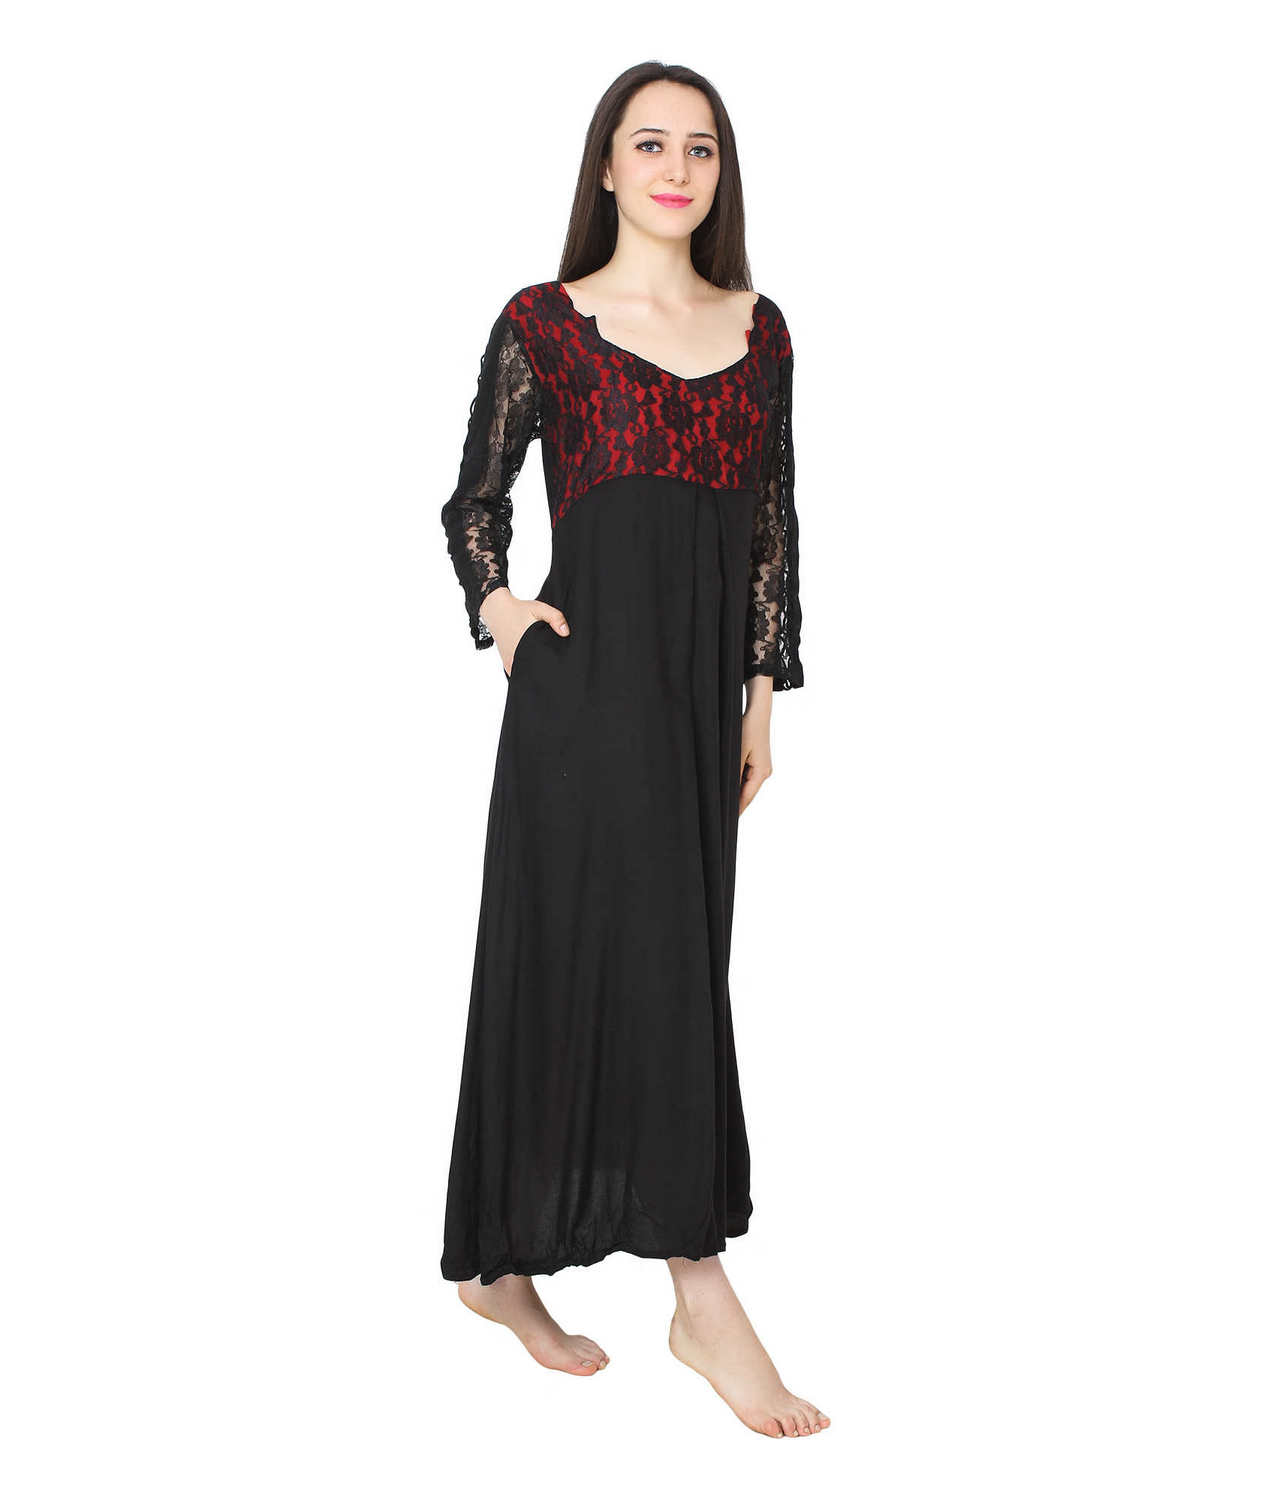 Lace Blouson Smock Style Maxi Nighty Dress in Black:Red